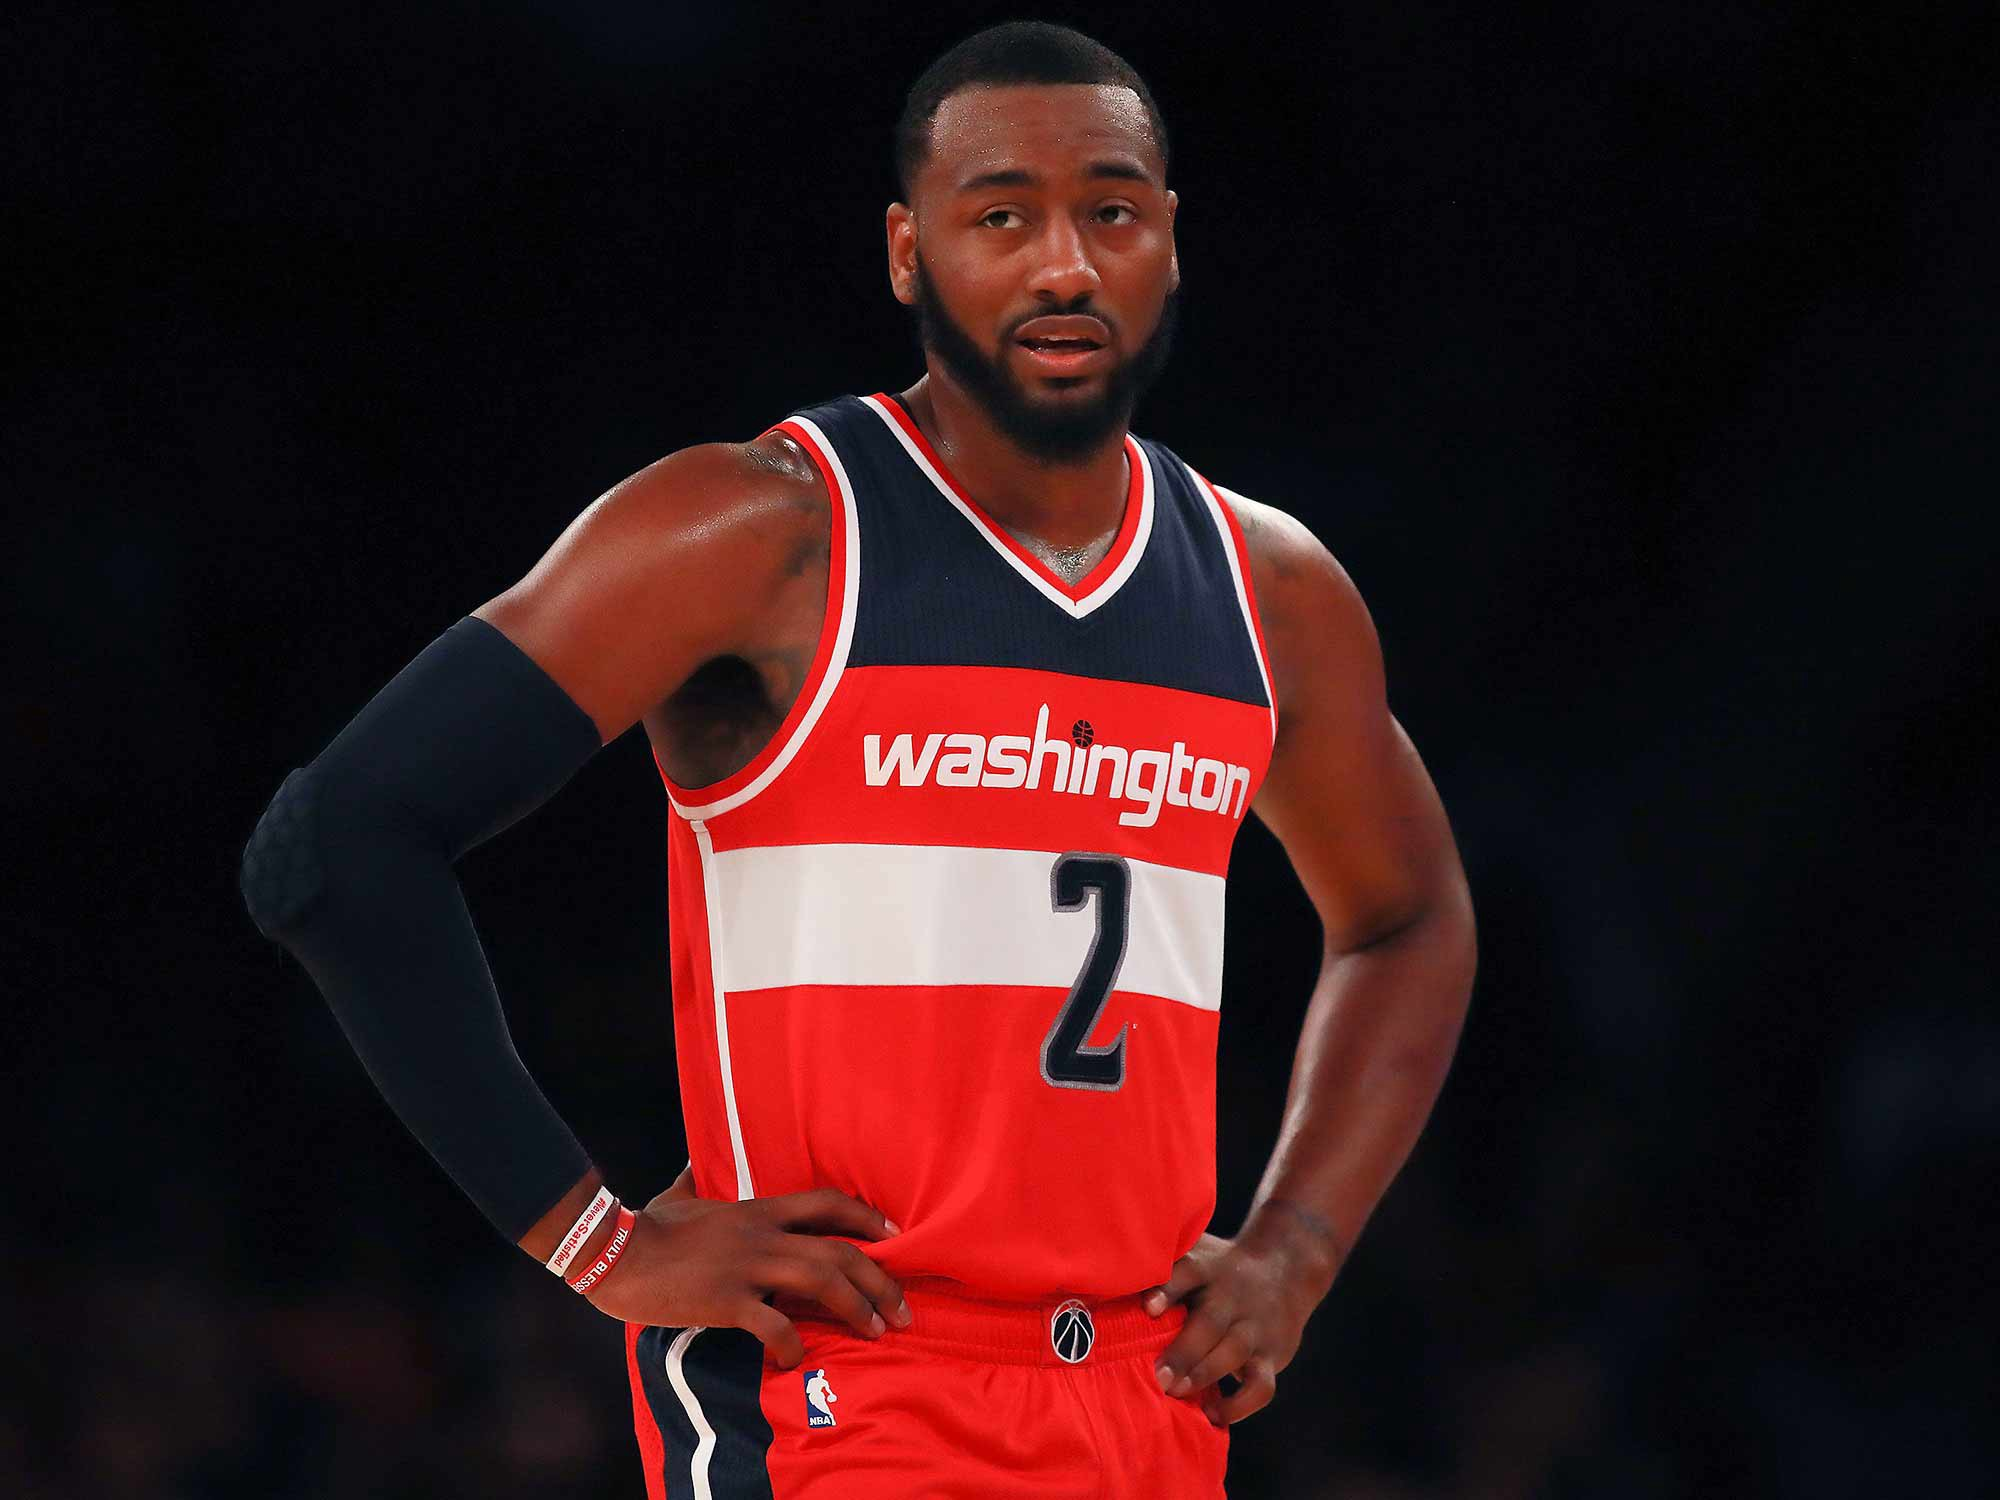 John Wall Net Worth and know his earnings, career, achievements,assets